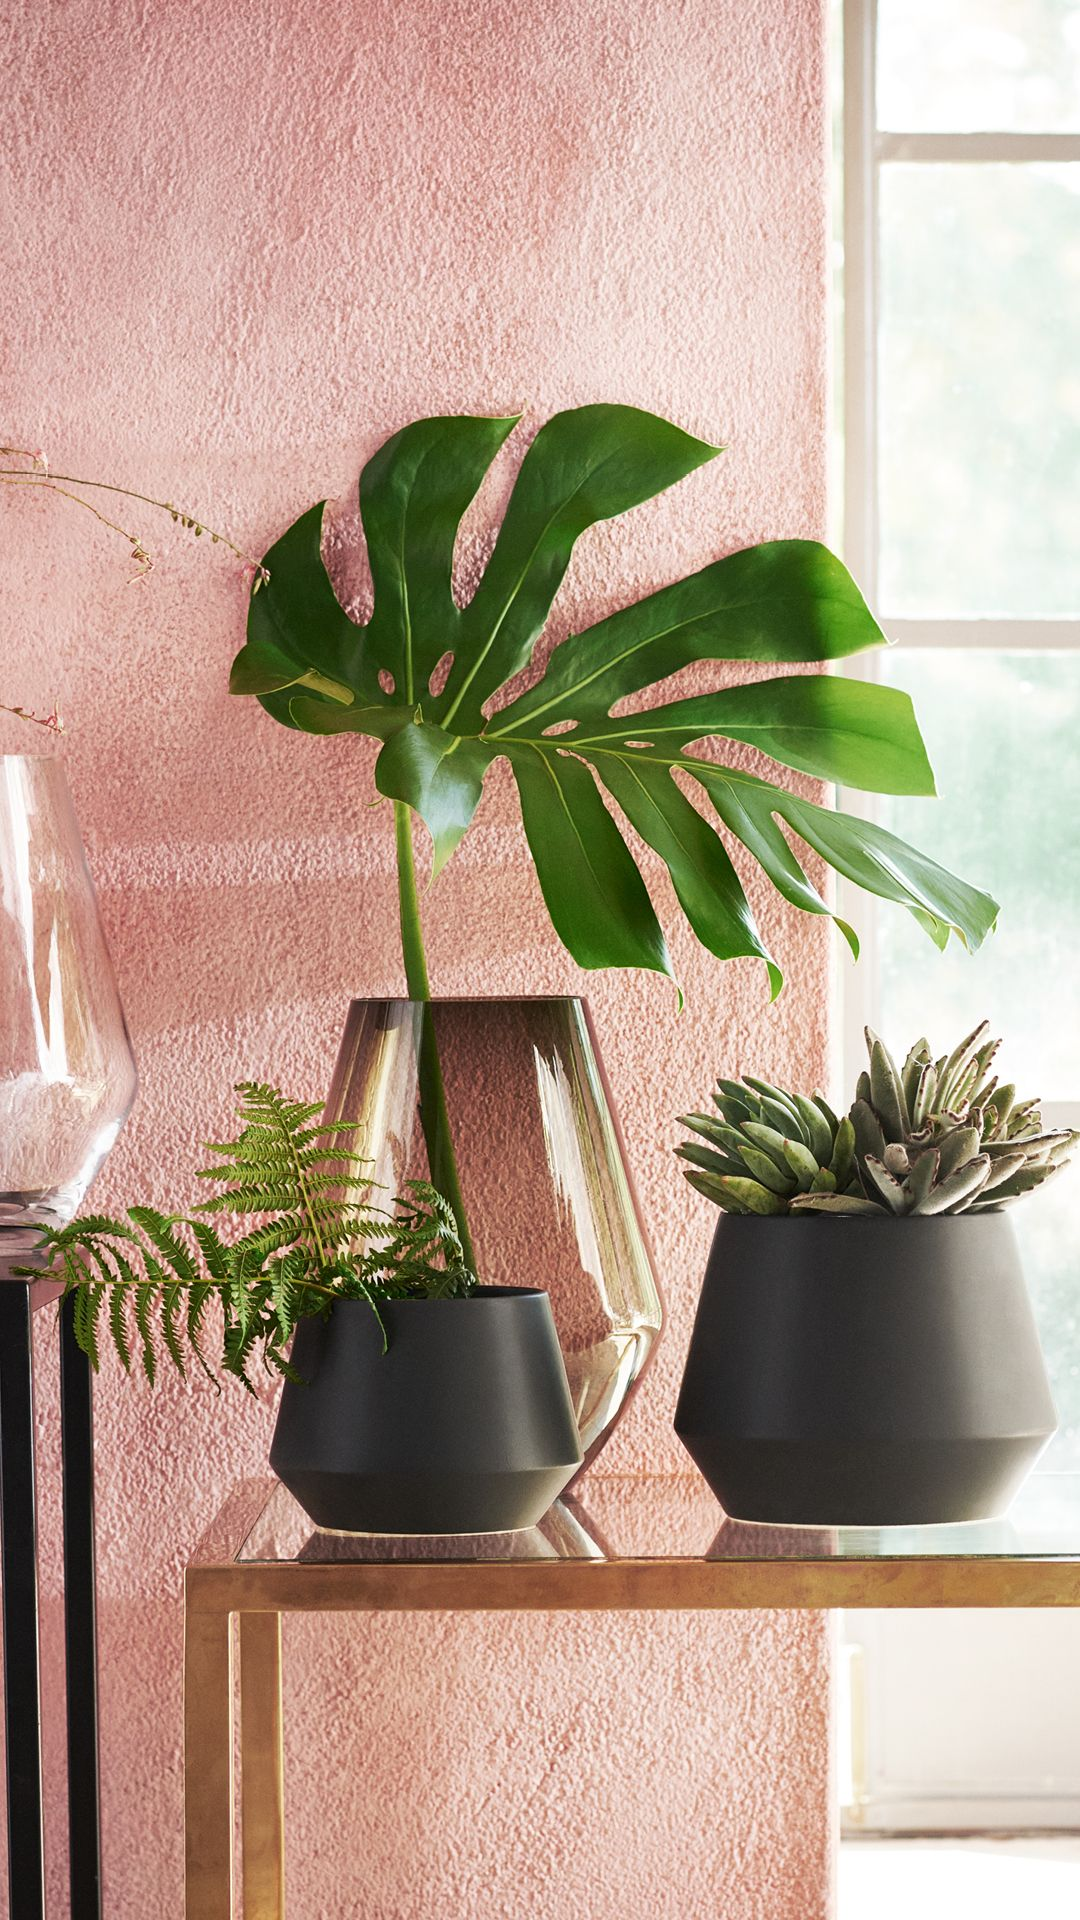 Etonnant Bring Nature Inside With Our Beautiful Selection Of Pots And Vases. | Hu0026M  Home